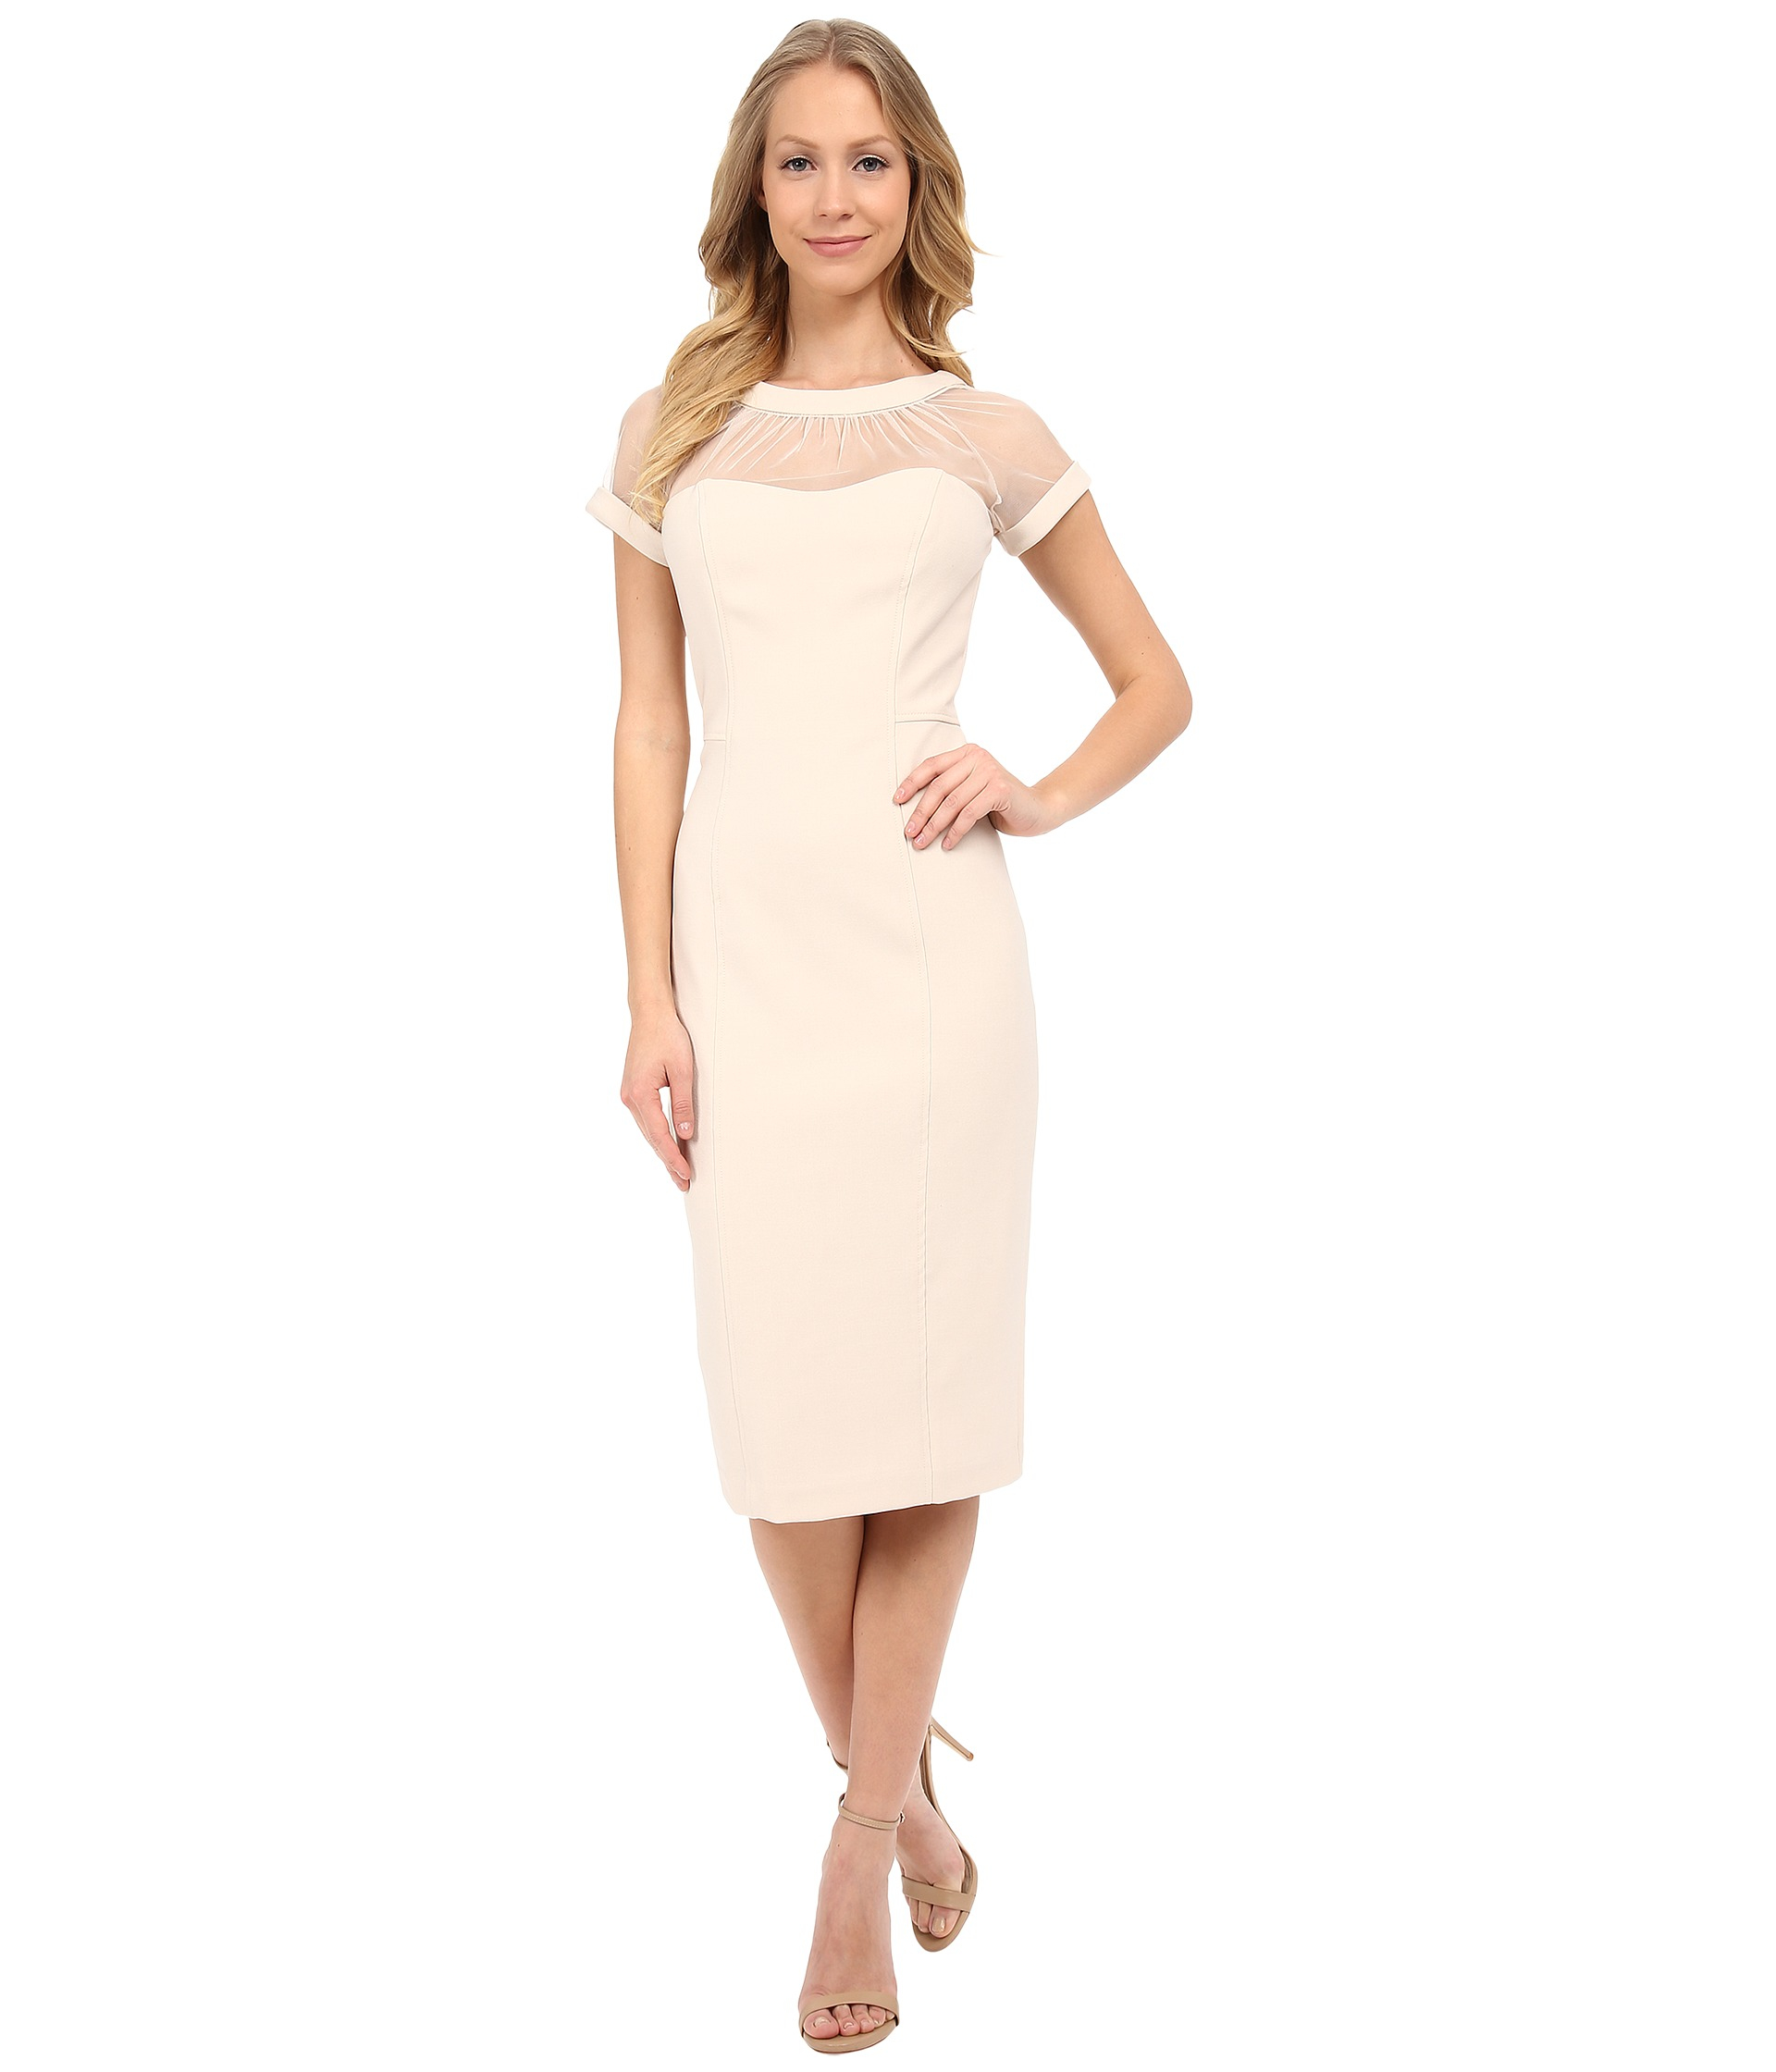 ed5d3206 Maggy London Illusion Top Crepe Dress in Natural - Lyst